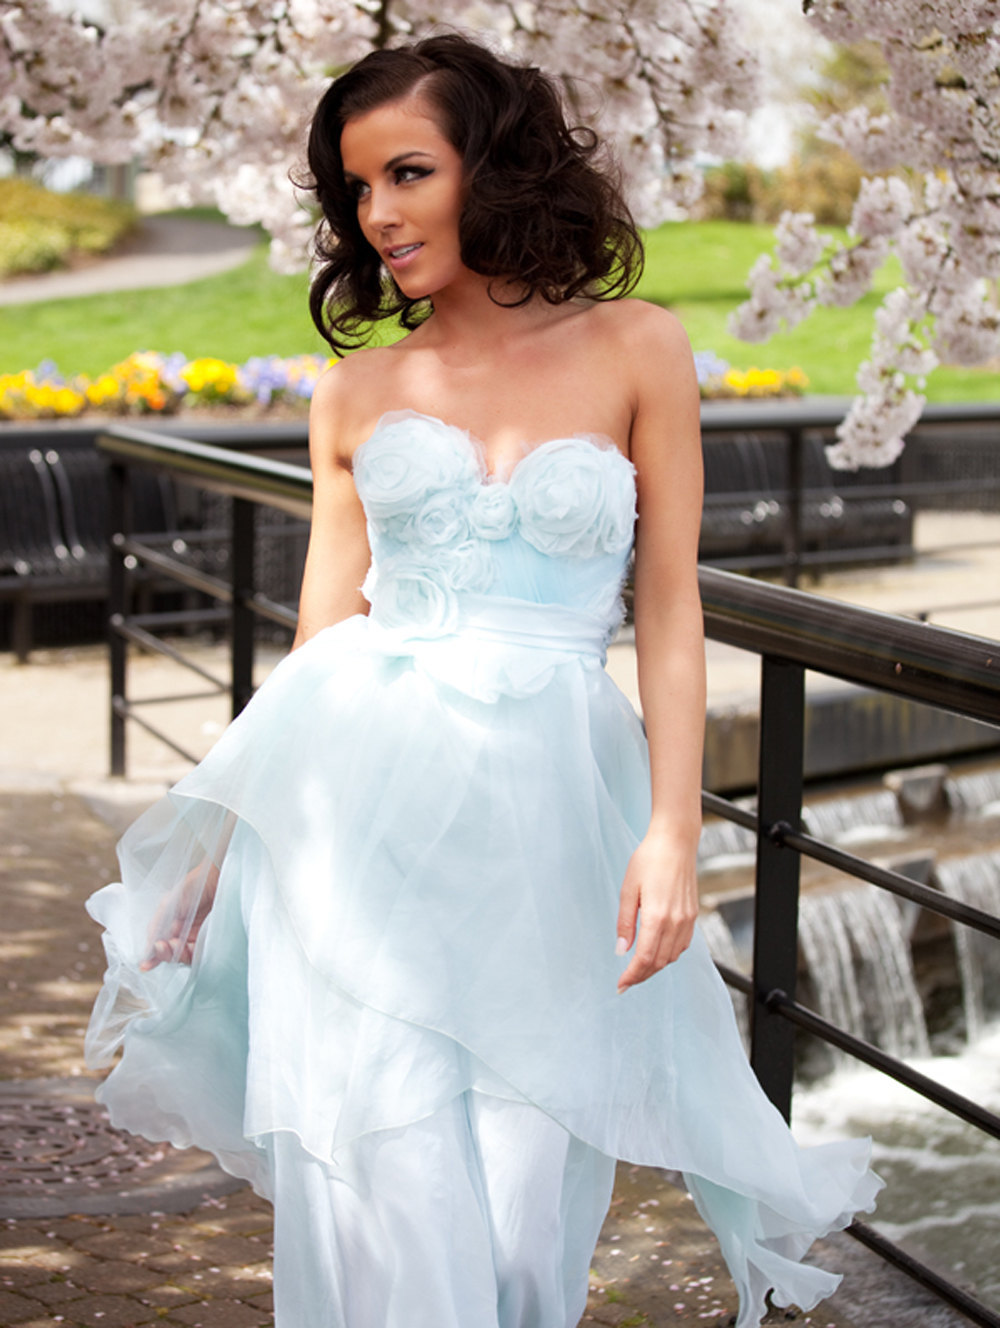 Brides-style-guide-white-aisle-dressing-by-wedding-style-claire-lafaye-light-blue-gown.full